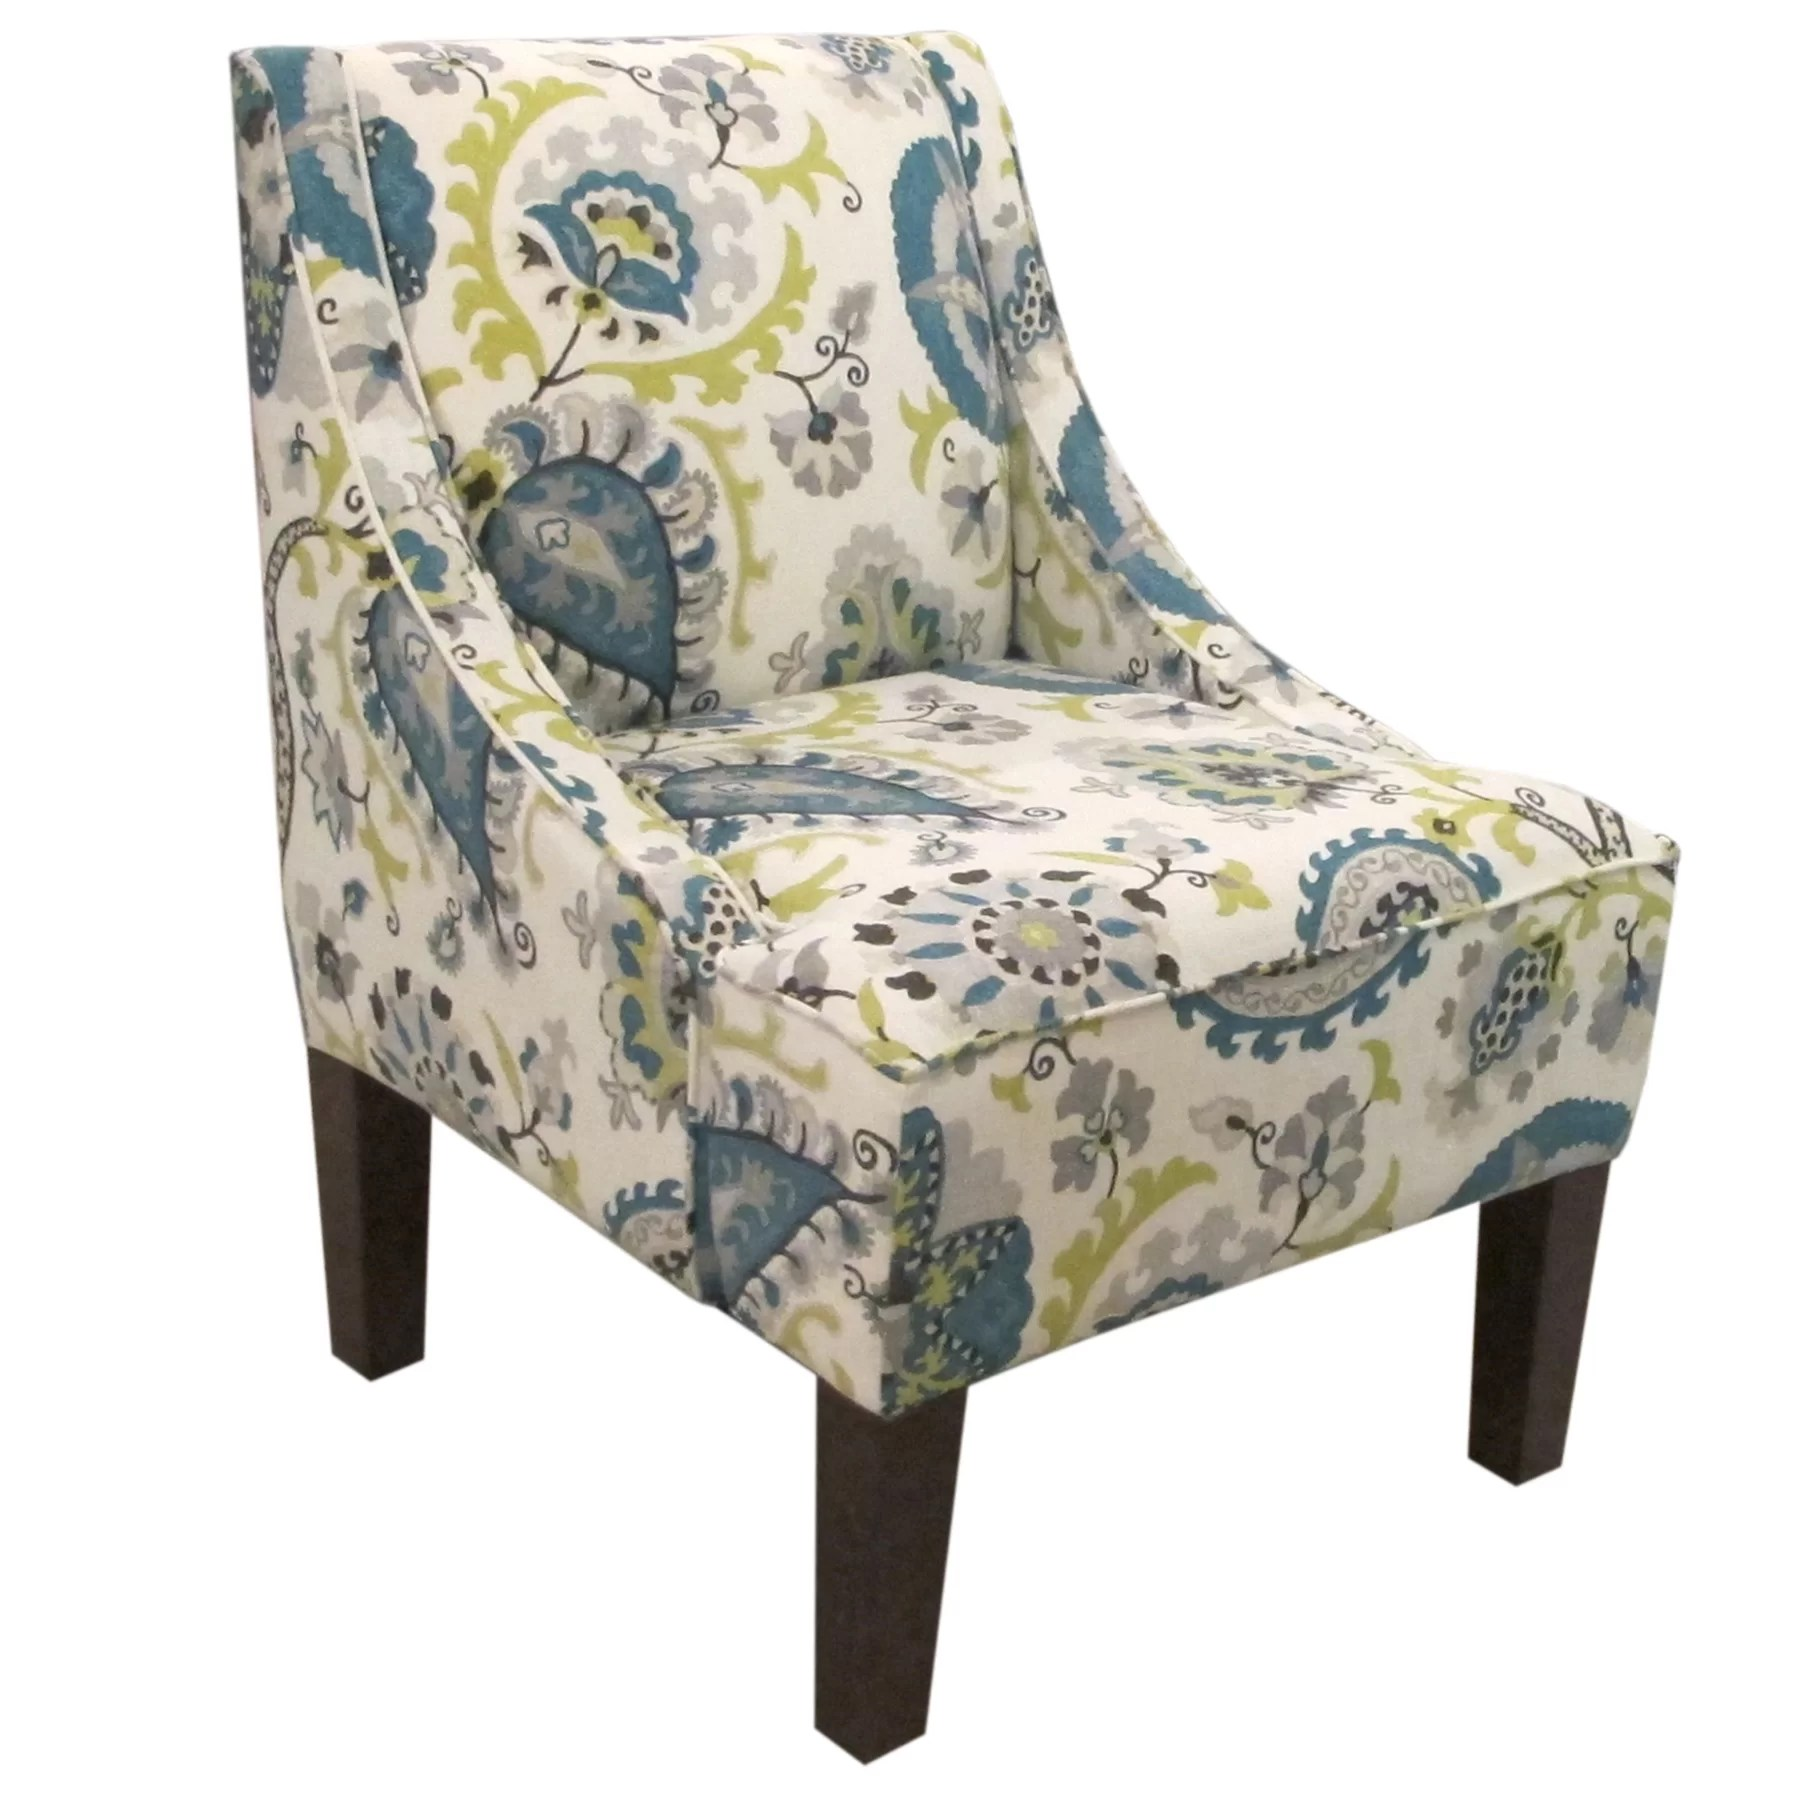 Upholstered Accent Chairs With Arms Bungalow Rose Heady Swoop Ladbroke Upholstered Arm Chair